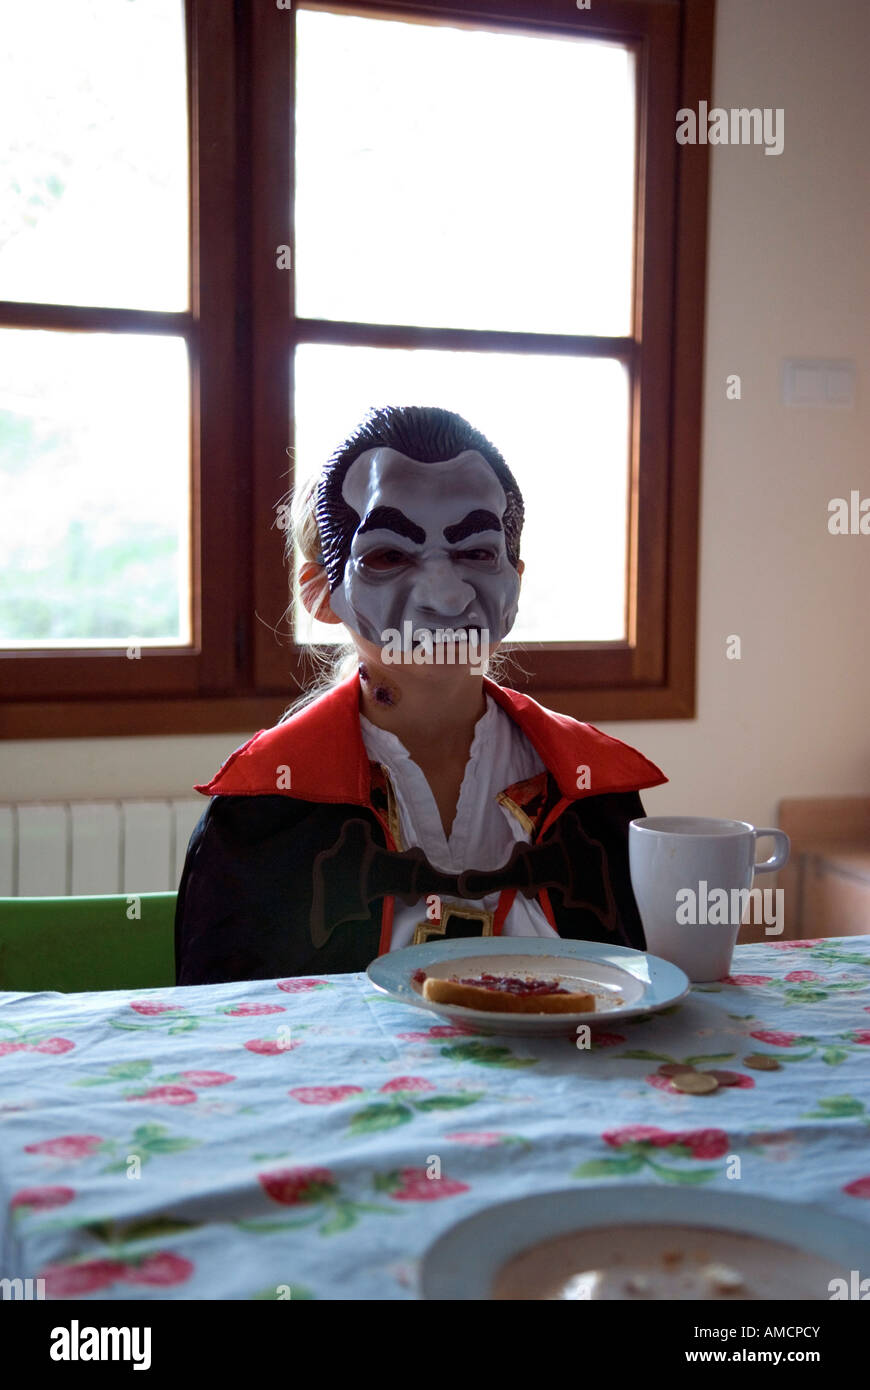 a young girl sits at breakfast in fancy dress with dracula mask and costume - Stock Image